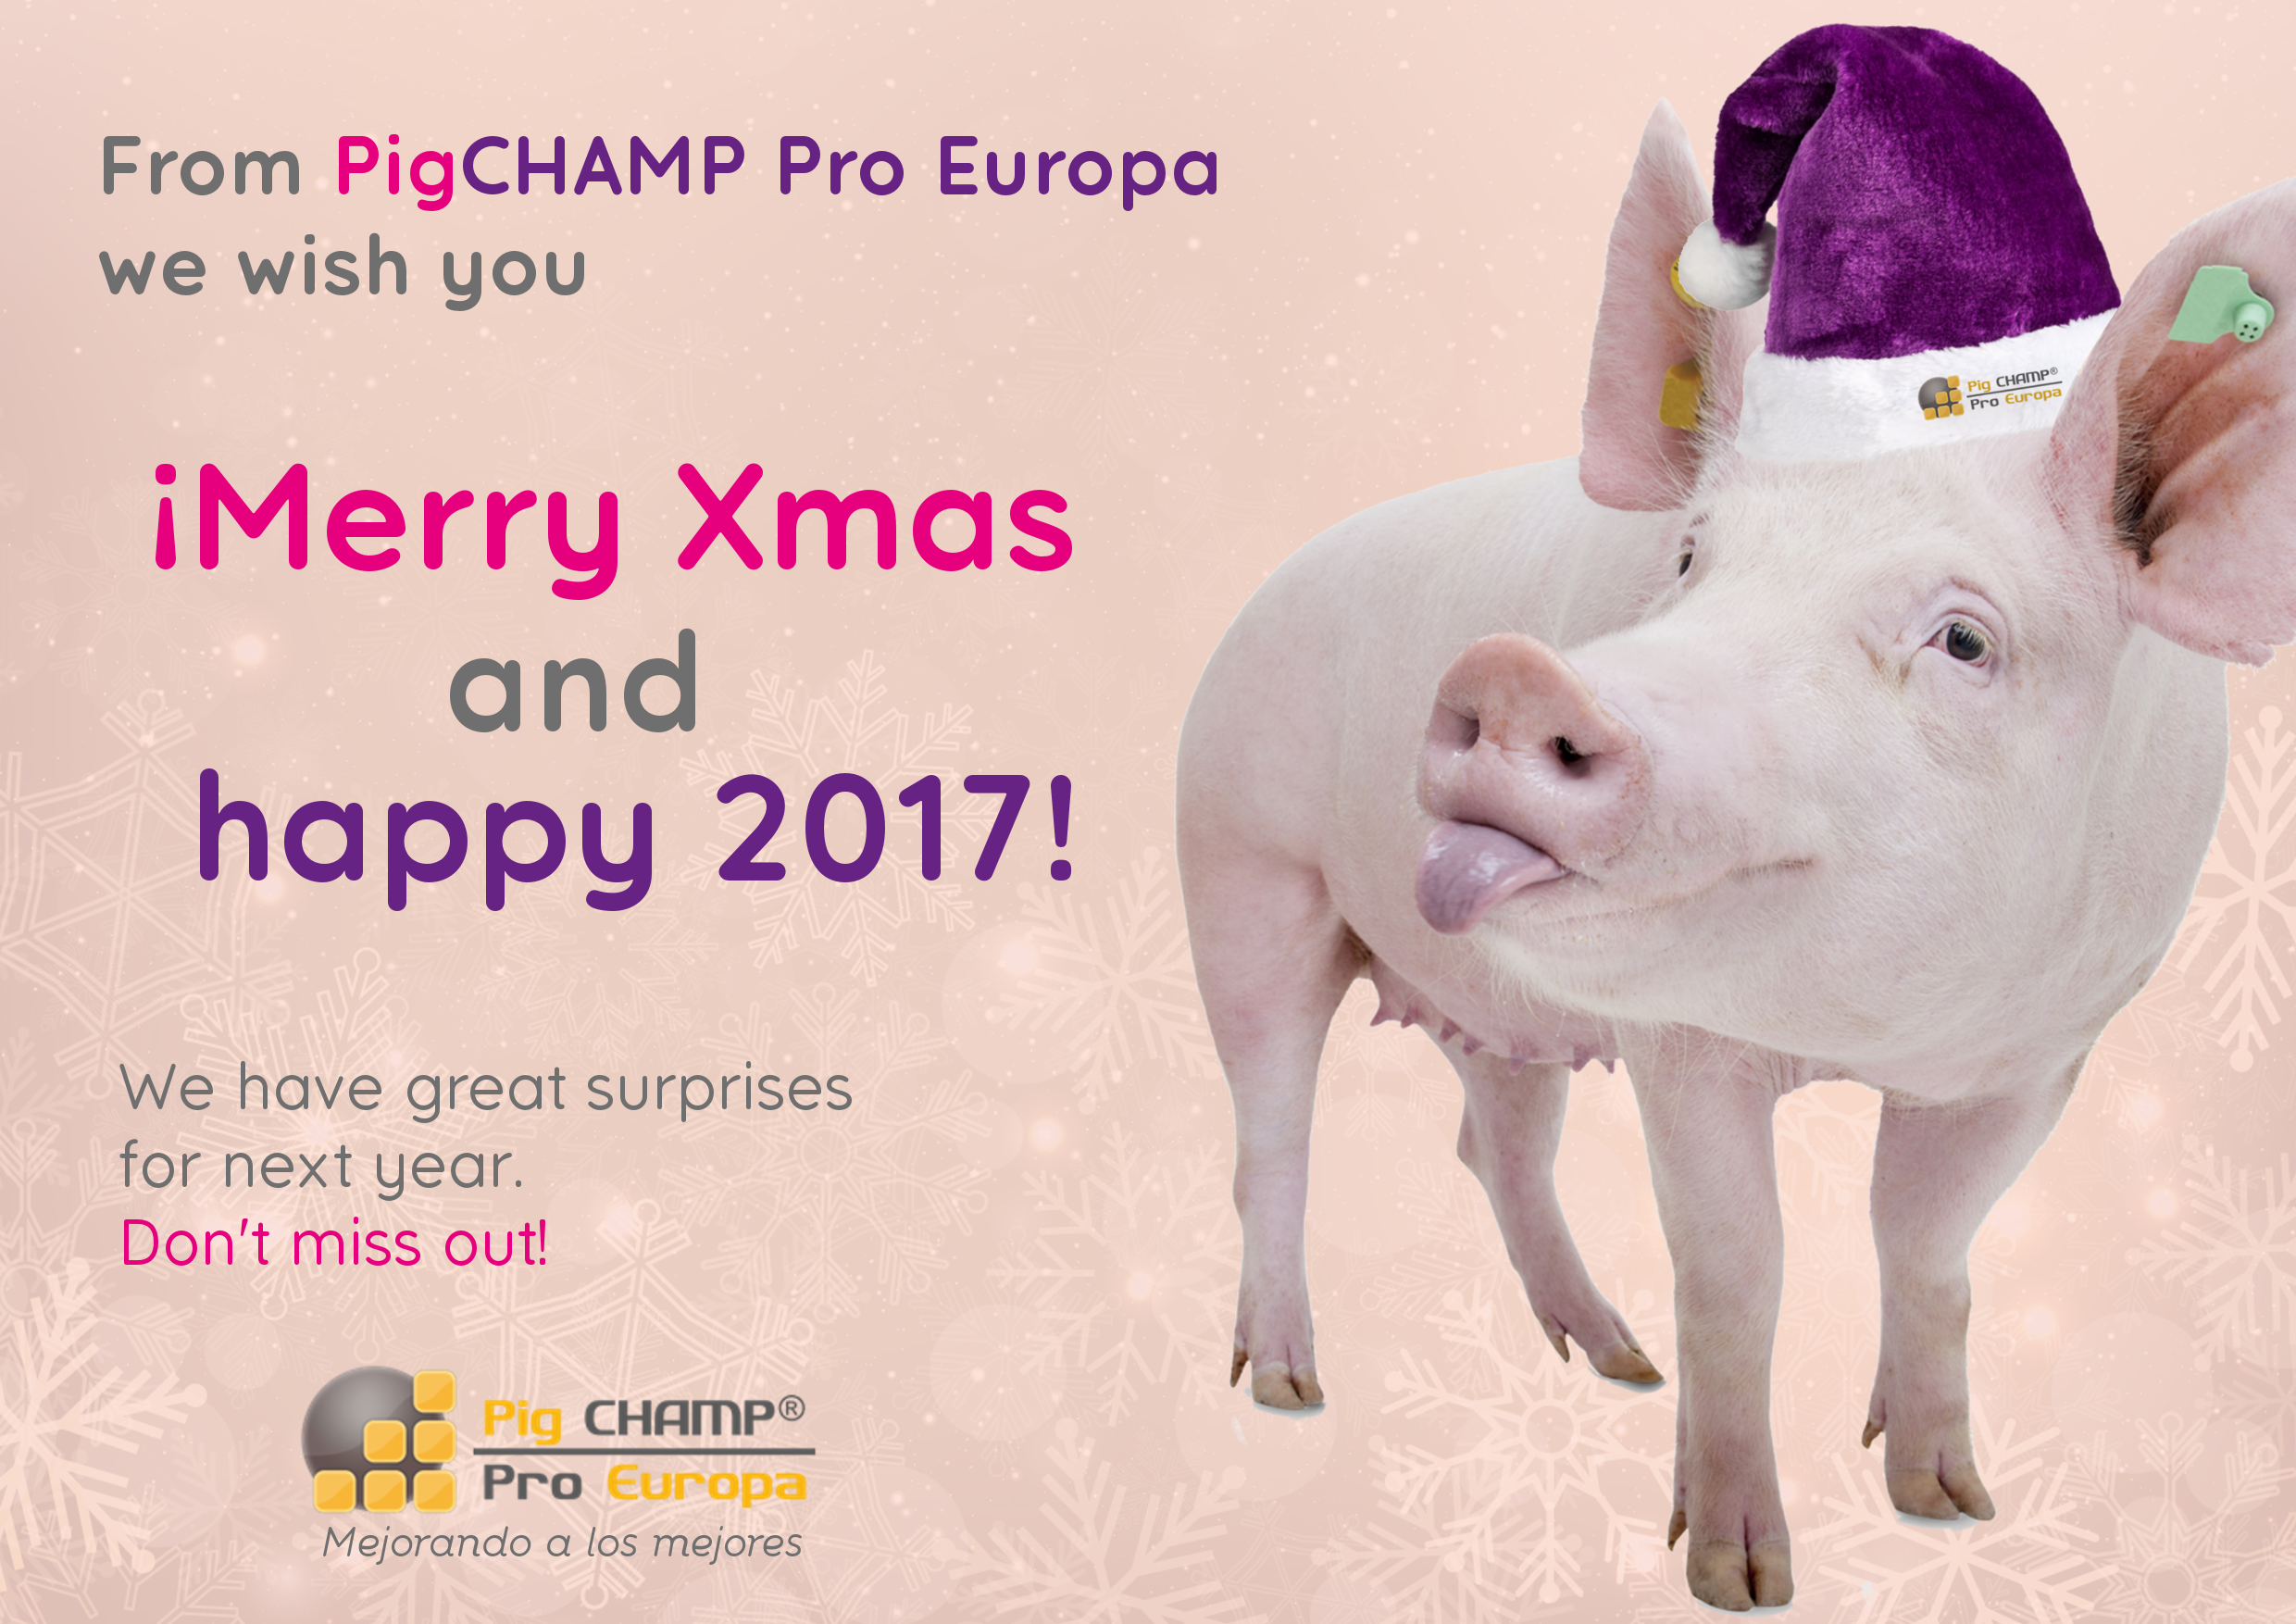 Merry christmas and happy 2017!